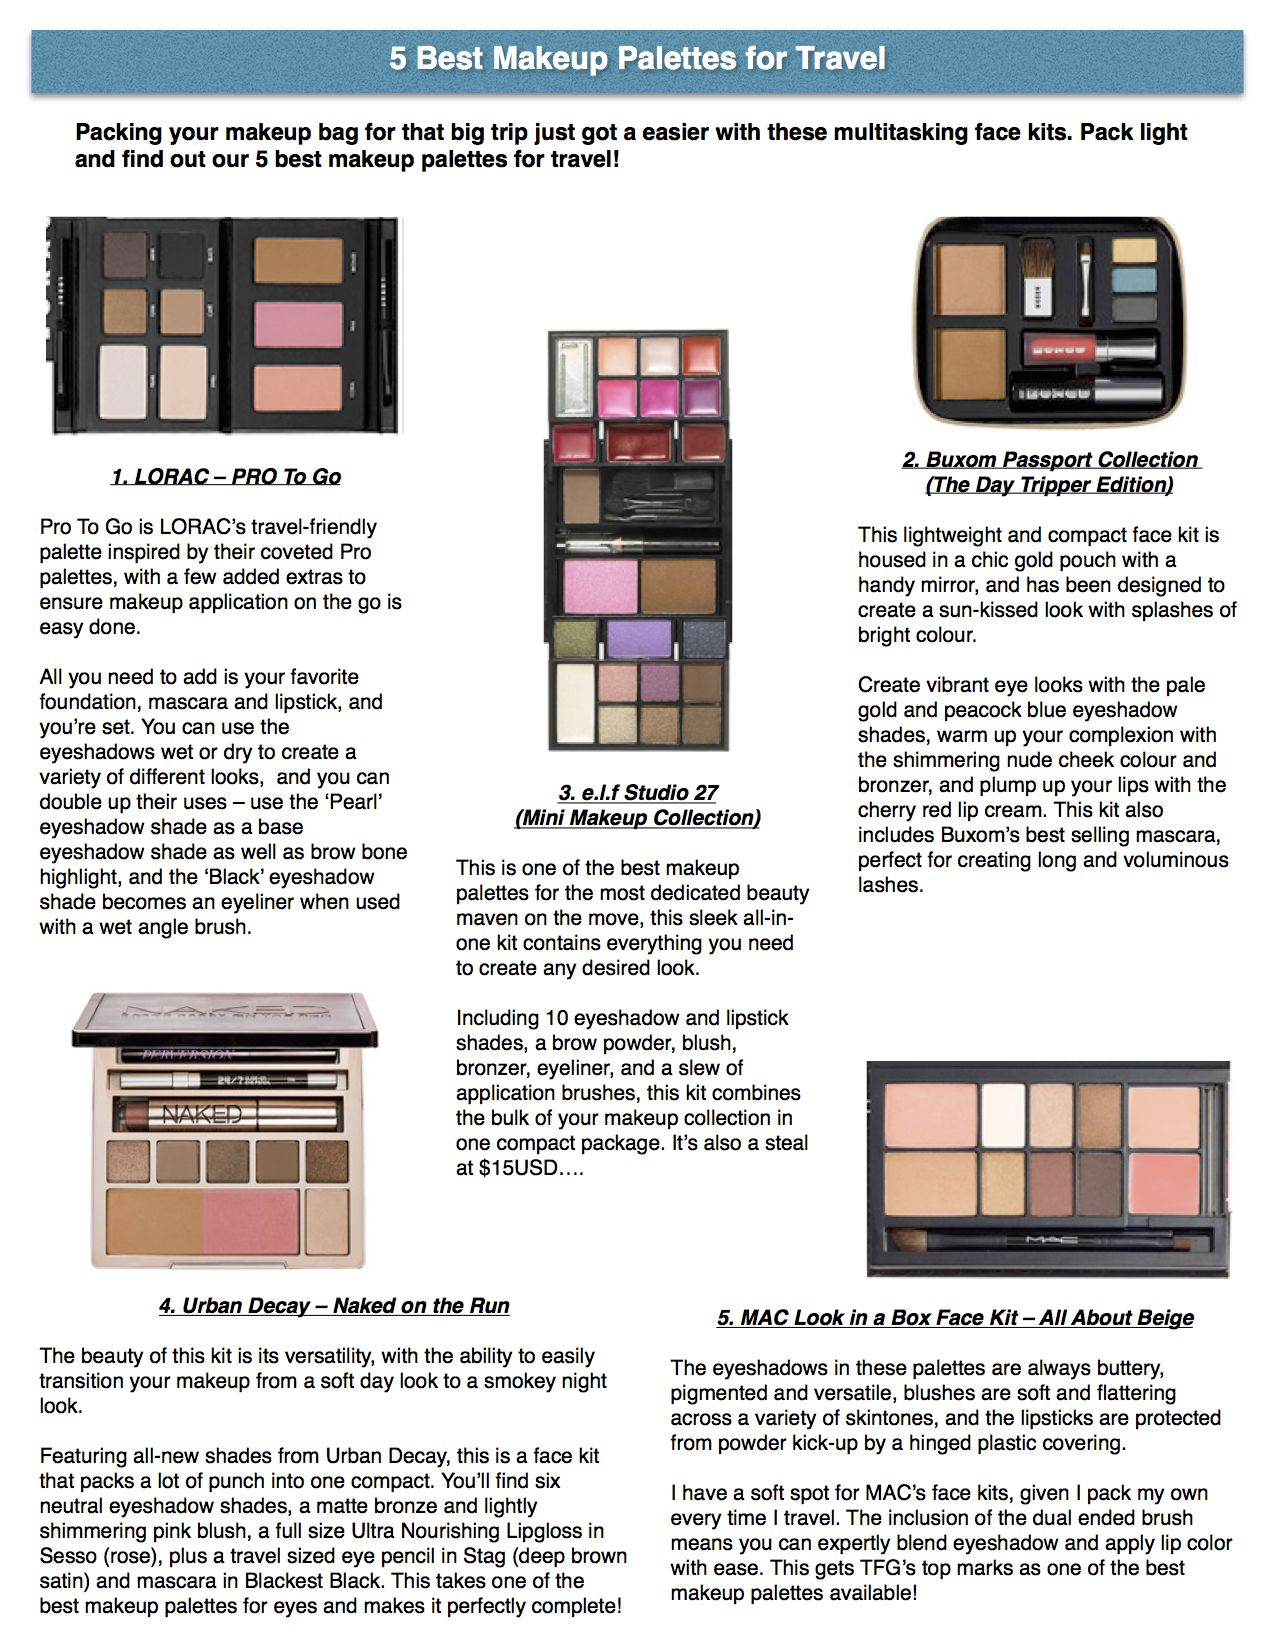 5 Best Makeup Palettes for Travel Makeup Storage Cart, Makeup Storage Containers, Makeup Jewellery